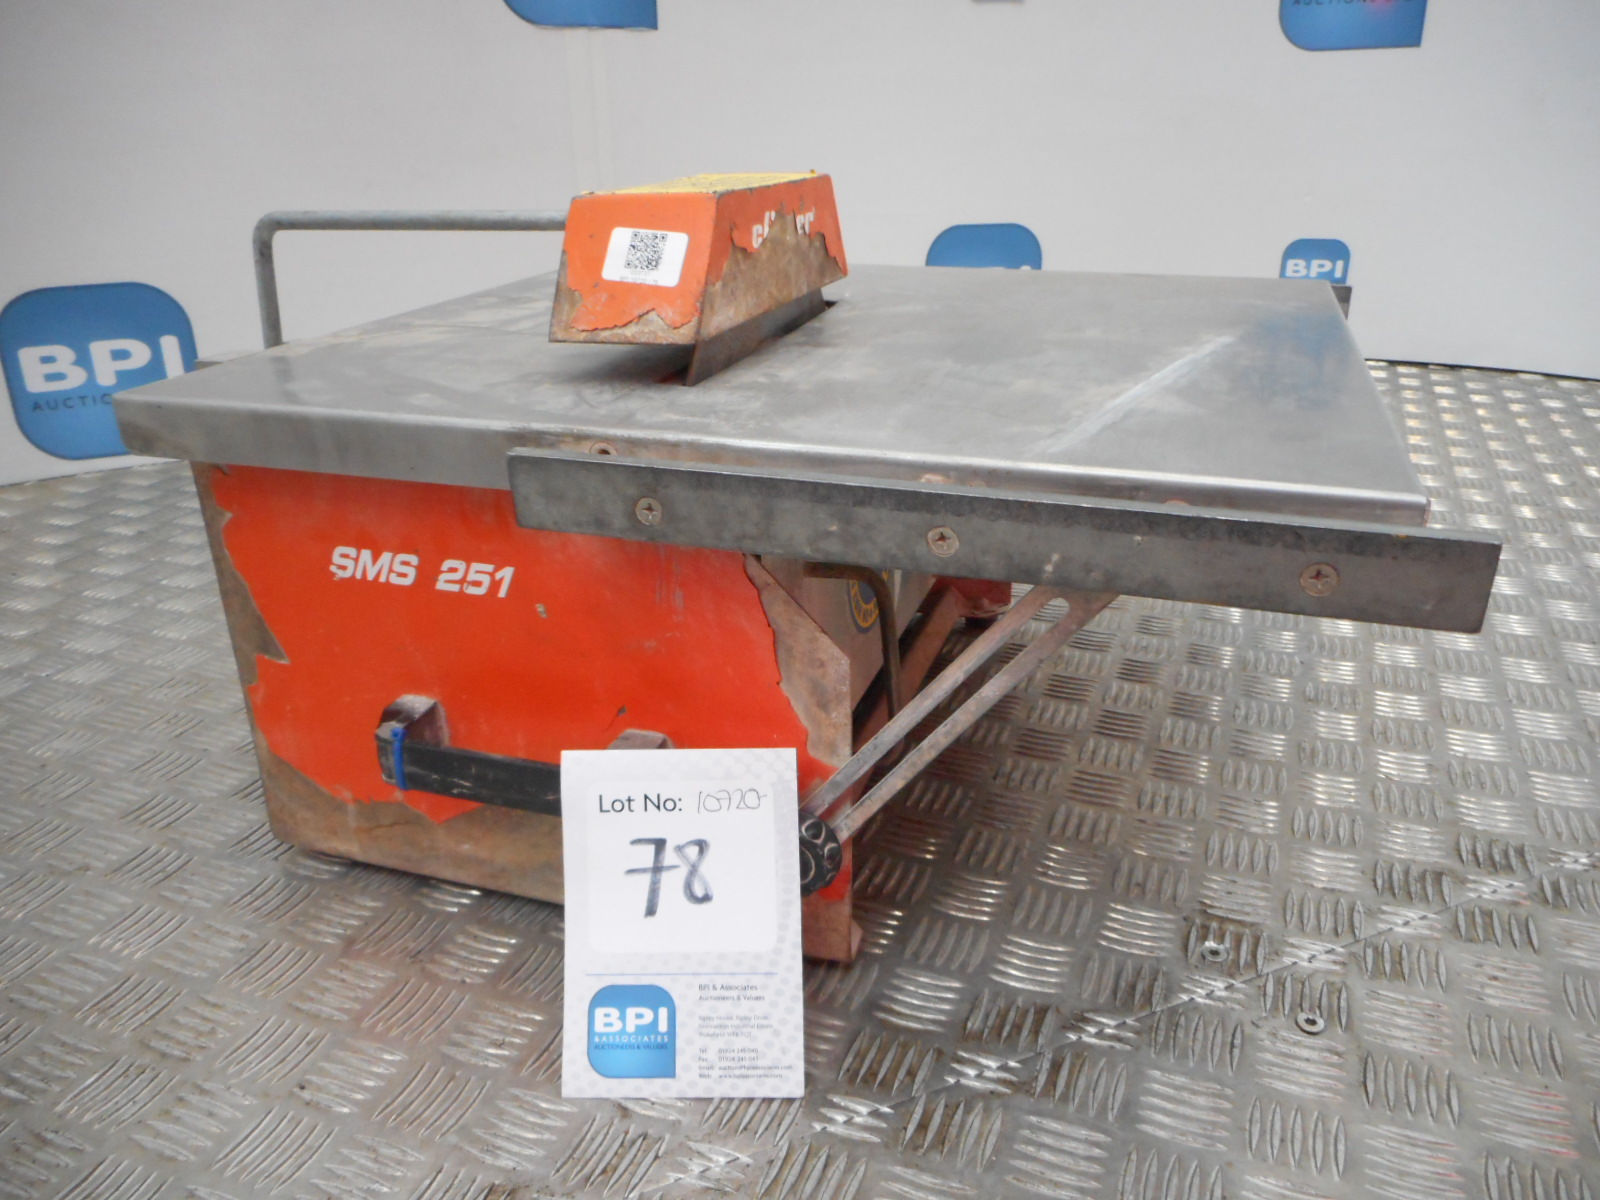 Lot 78 Norton Sms 251 033737 Tile Cutter Electric Has A 110v